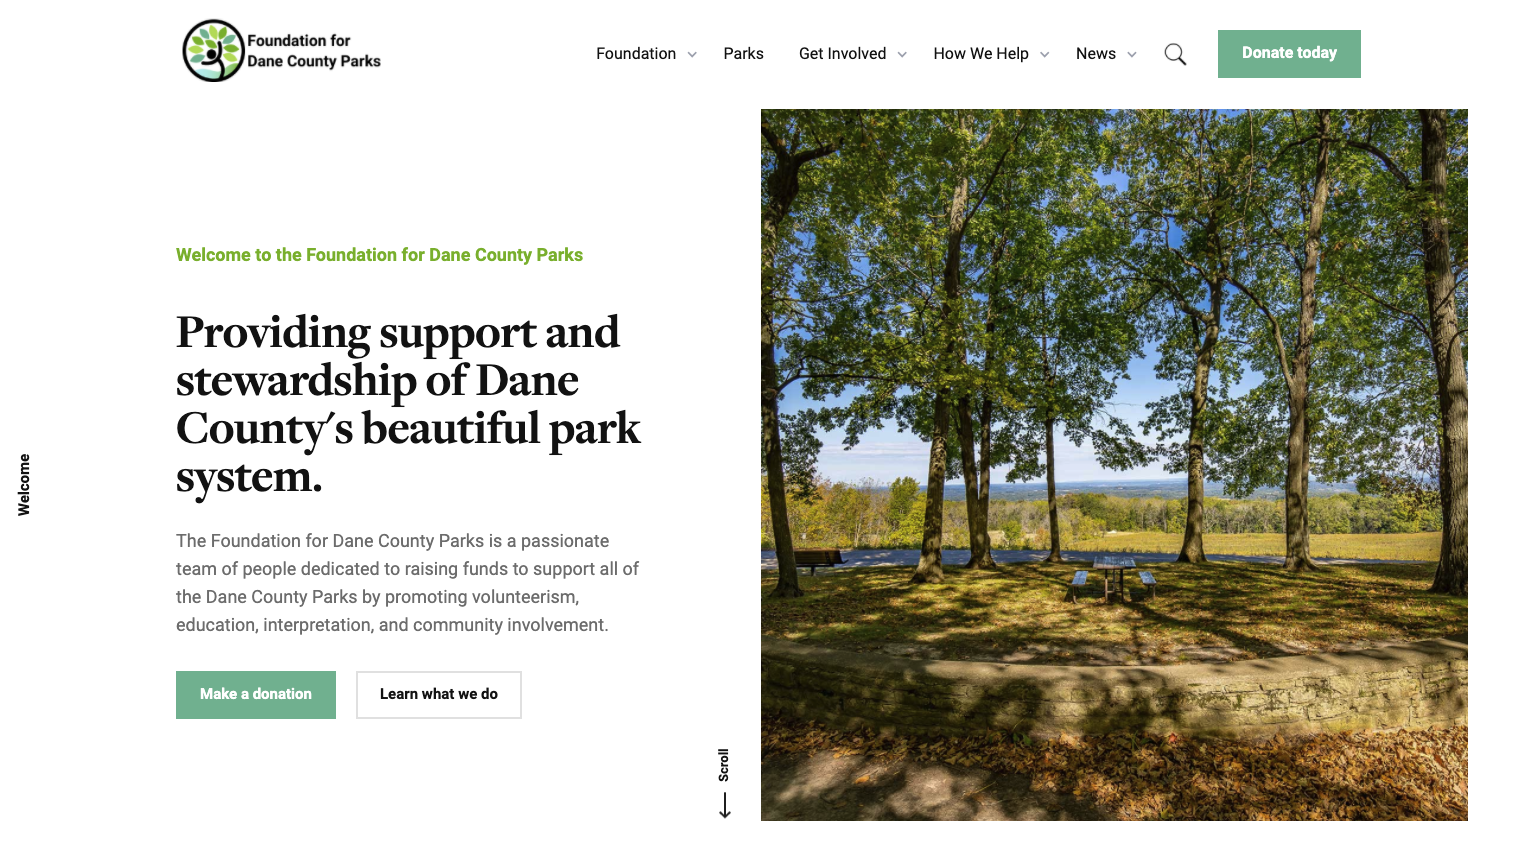 Homepage: Foundation for Dane County Parks website